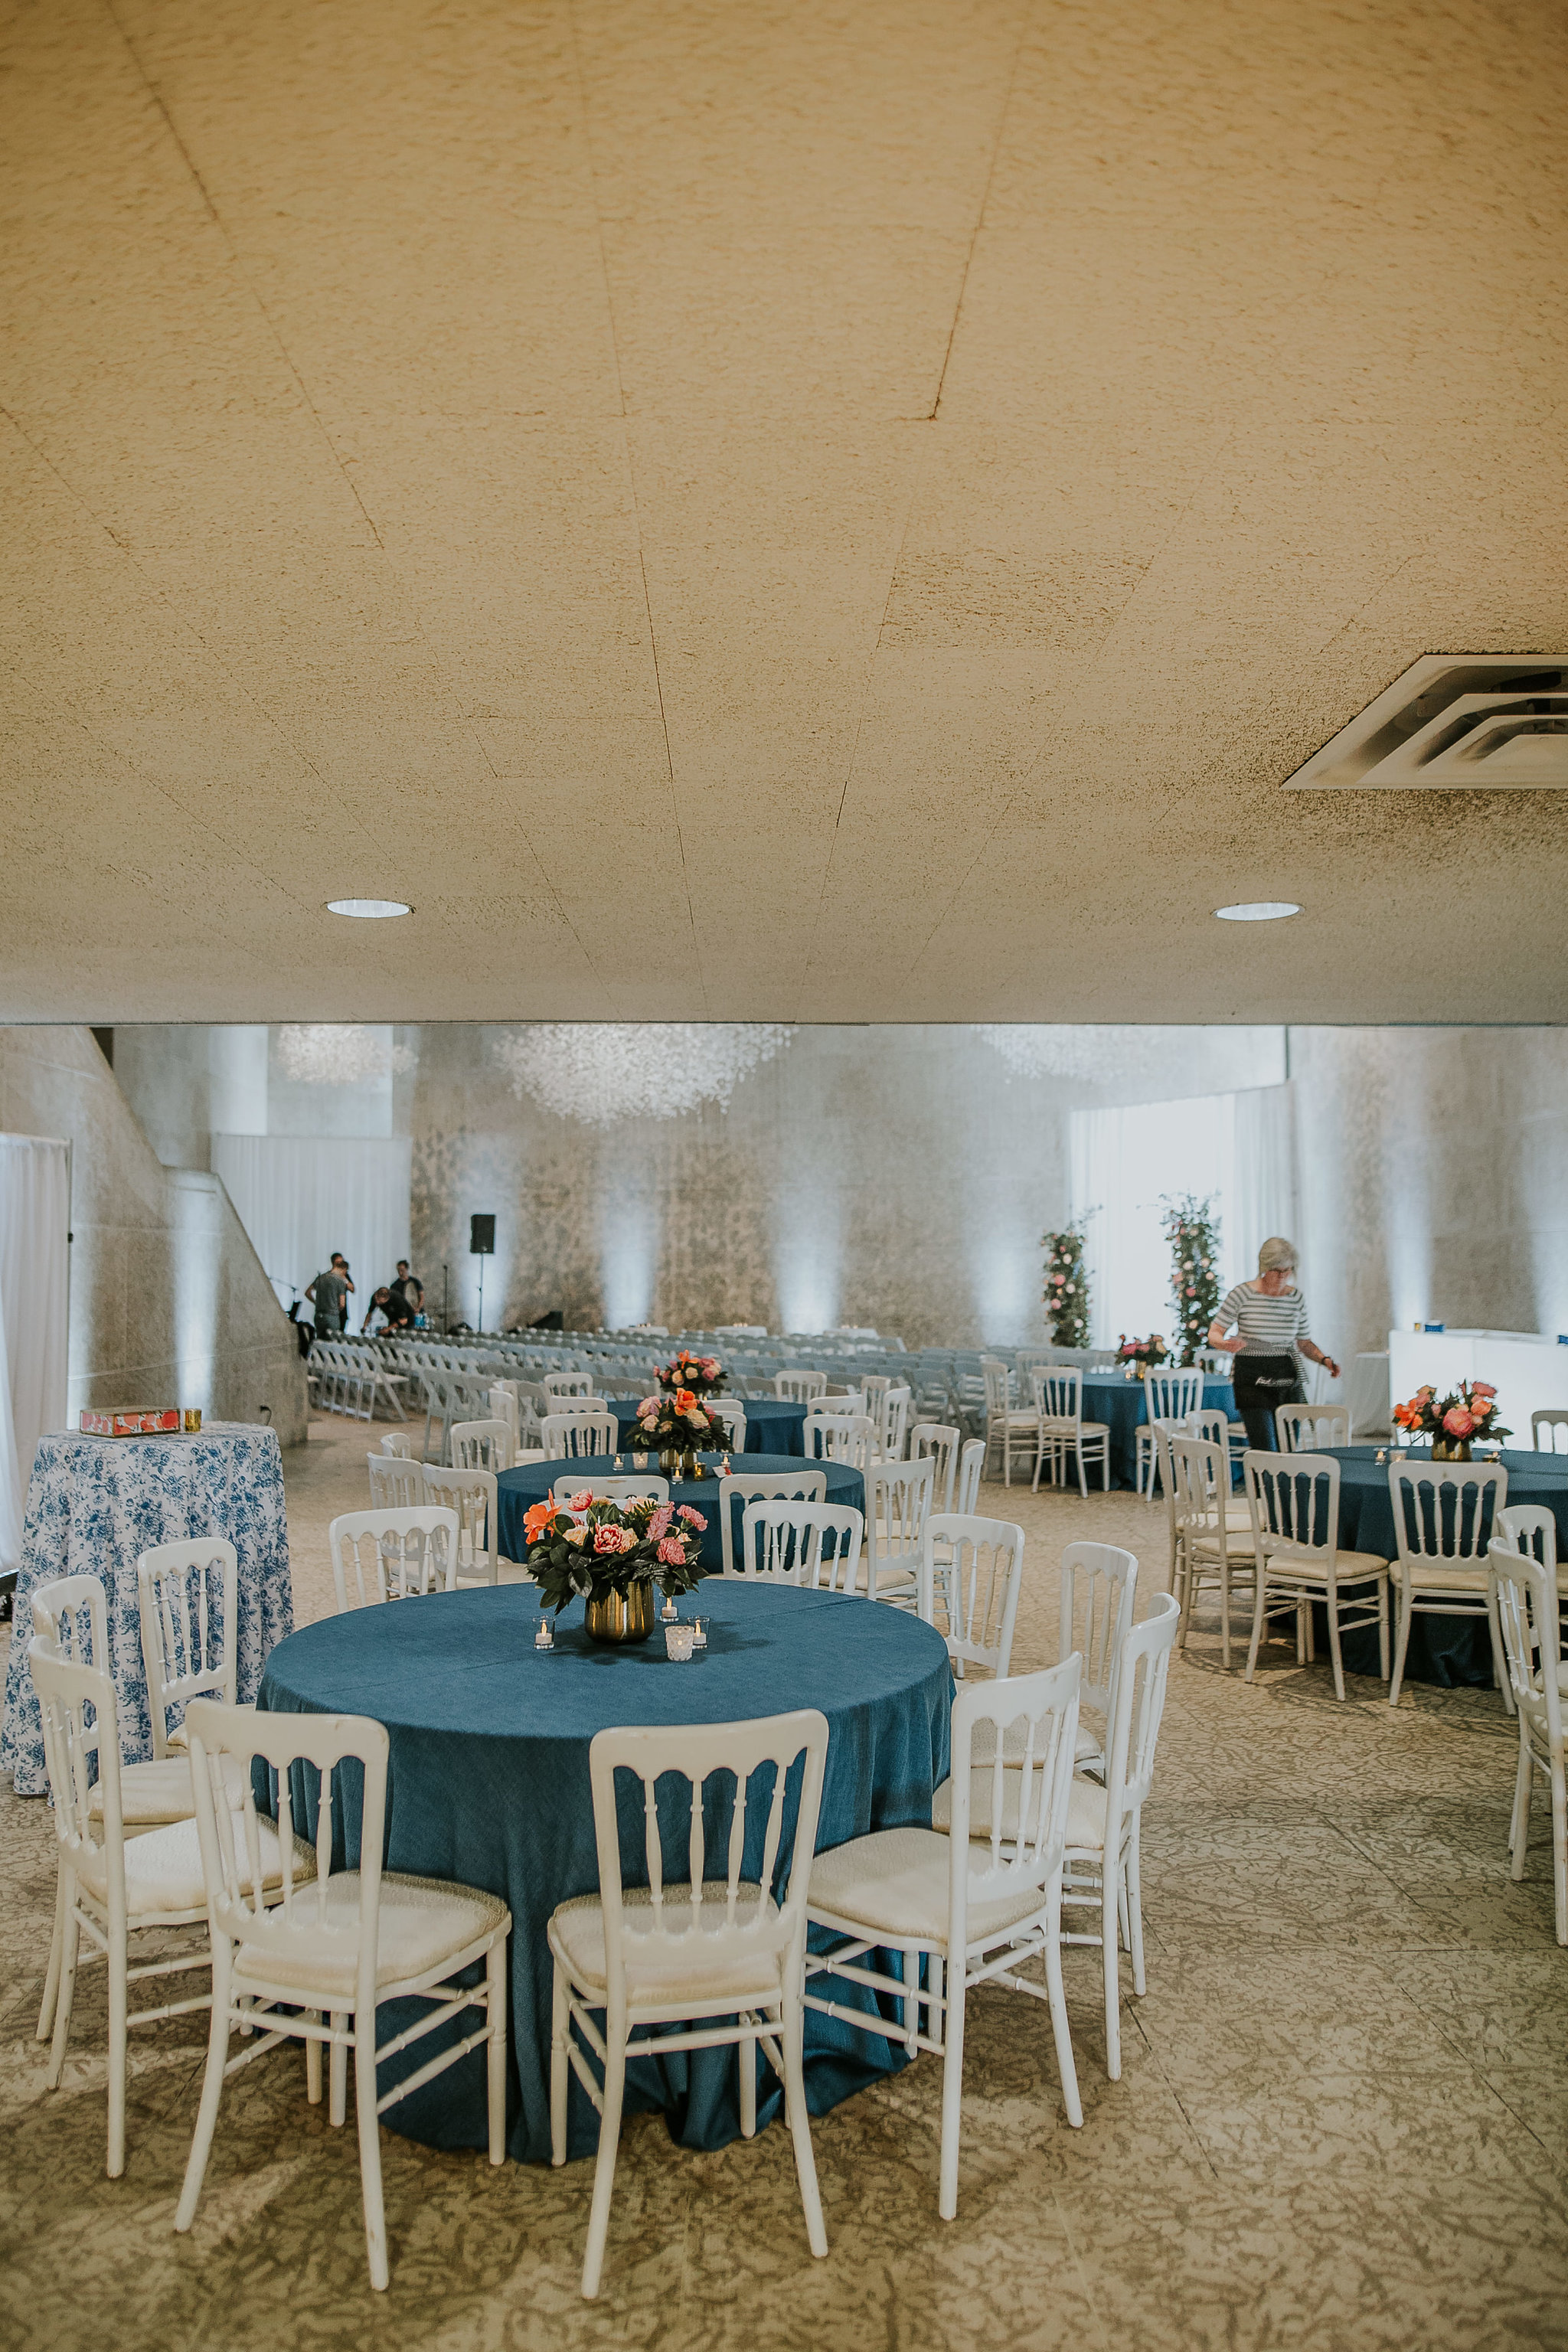 Weddings at the WAG - Top Wedding Venues in Winnipeg